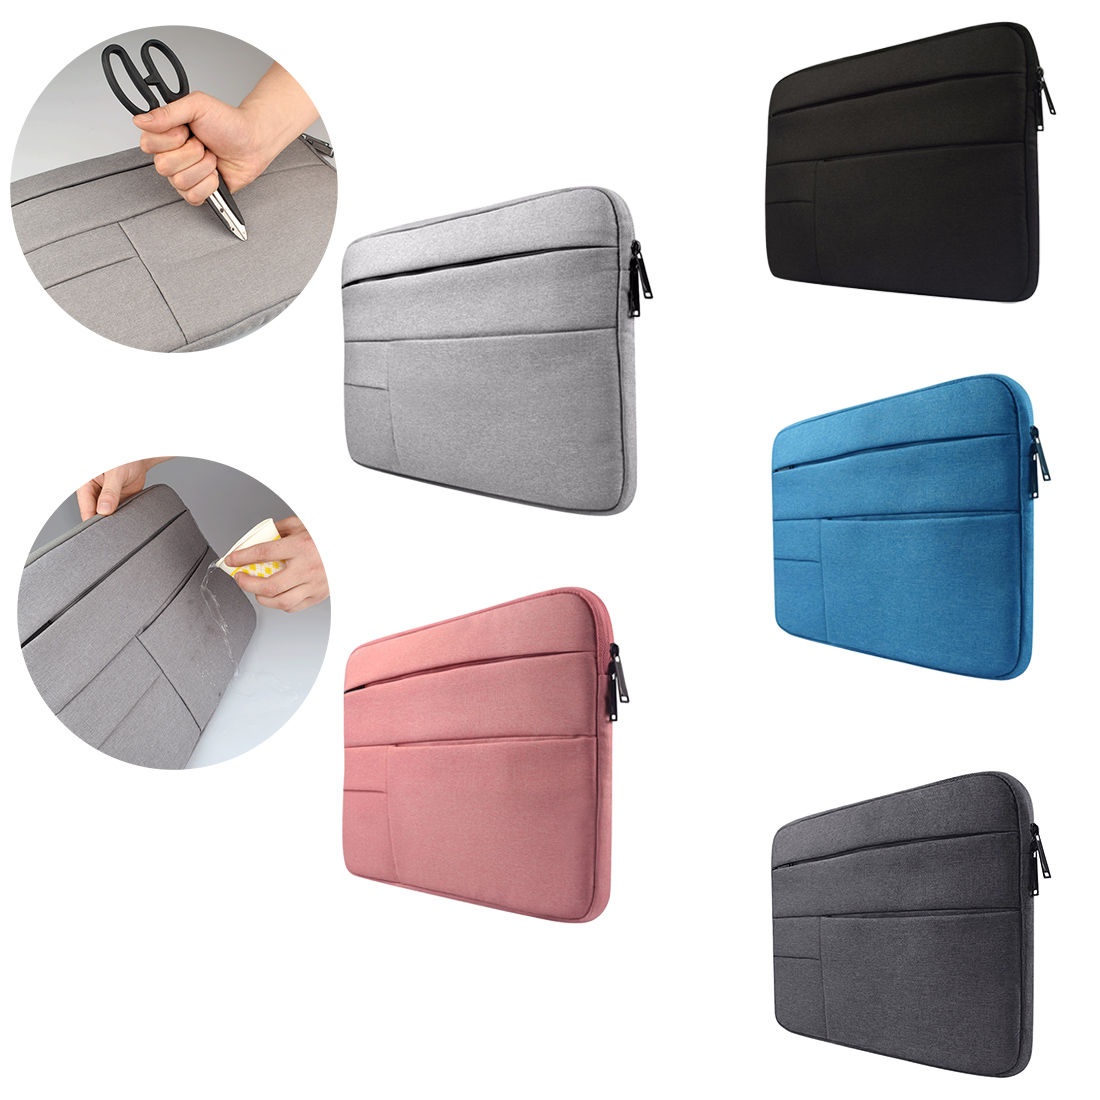 Laptop Sleeve bag for Dell Asus Lenovo HP Acer Computer 11 12 13 14 15 inch for Macbook Air Pro Notebook 15.6 Sleeve Case Simple-in Laptop Bags & Cases from Computer & Office